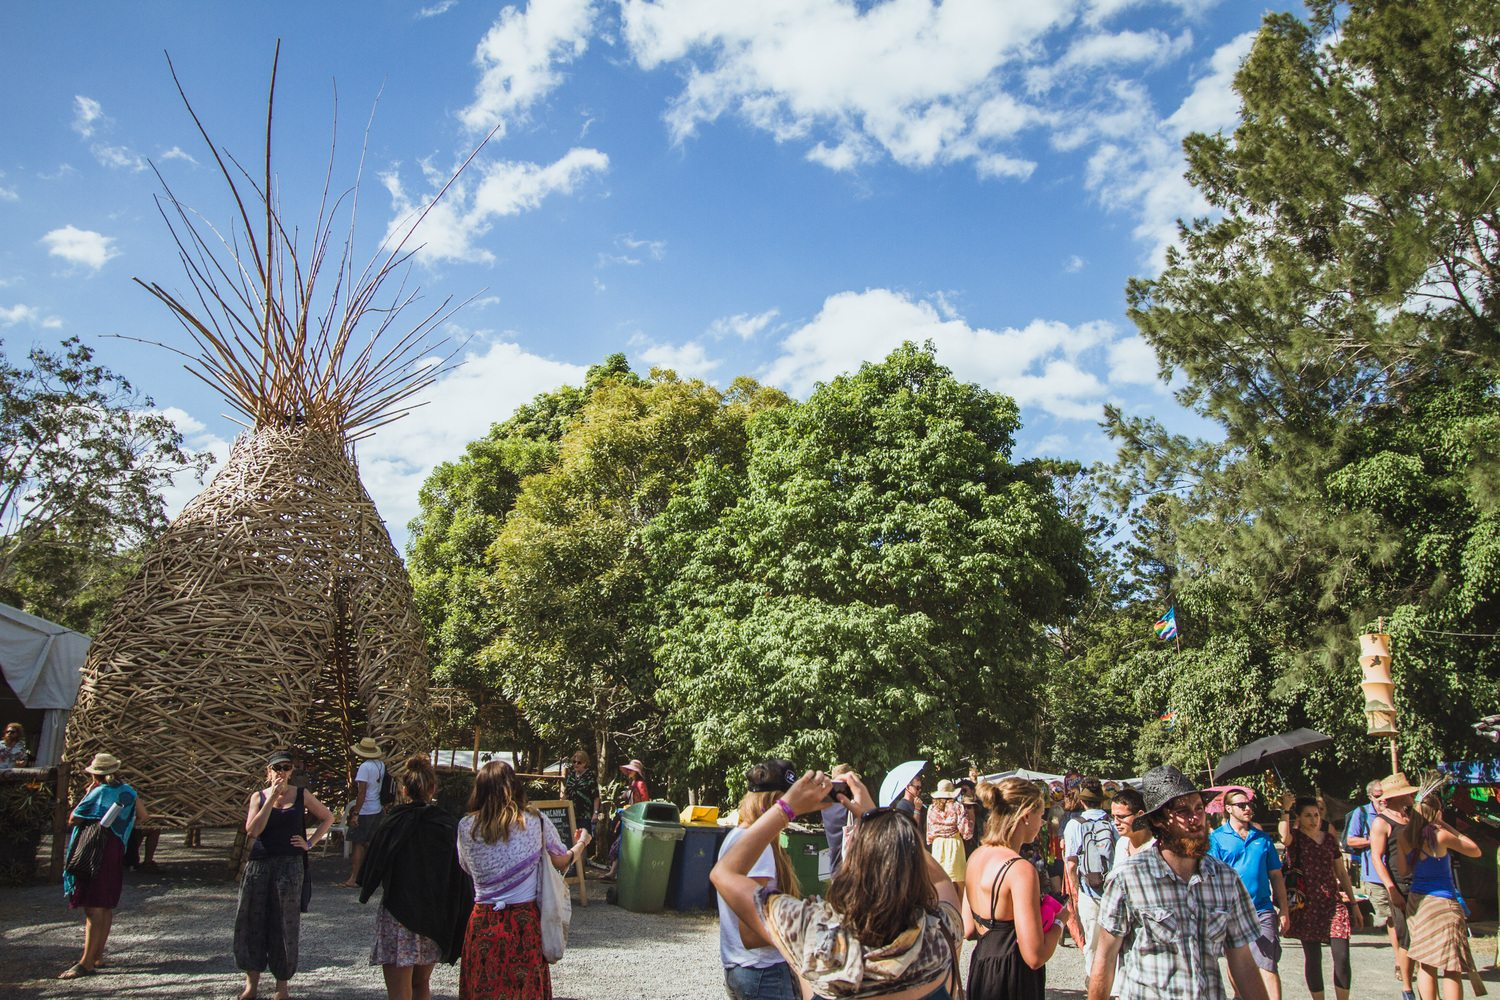 Pineapple Lounge Sculpture - Woodford Festival